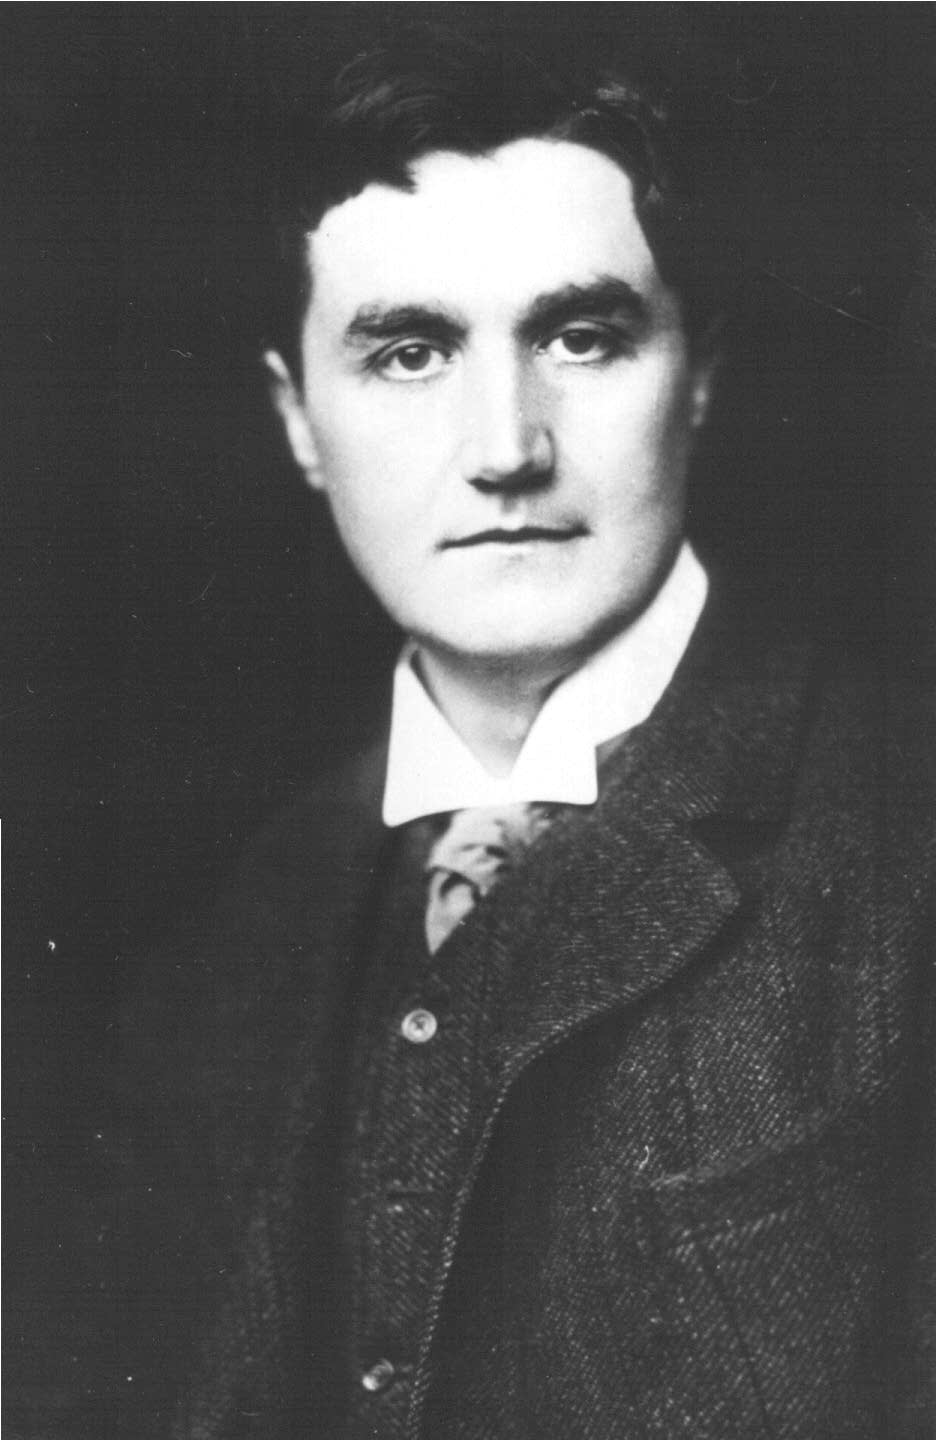 Ralph Vaughan Williams as a young man